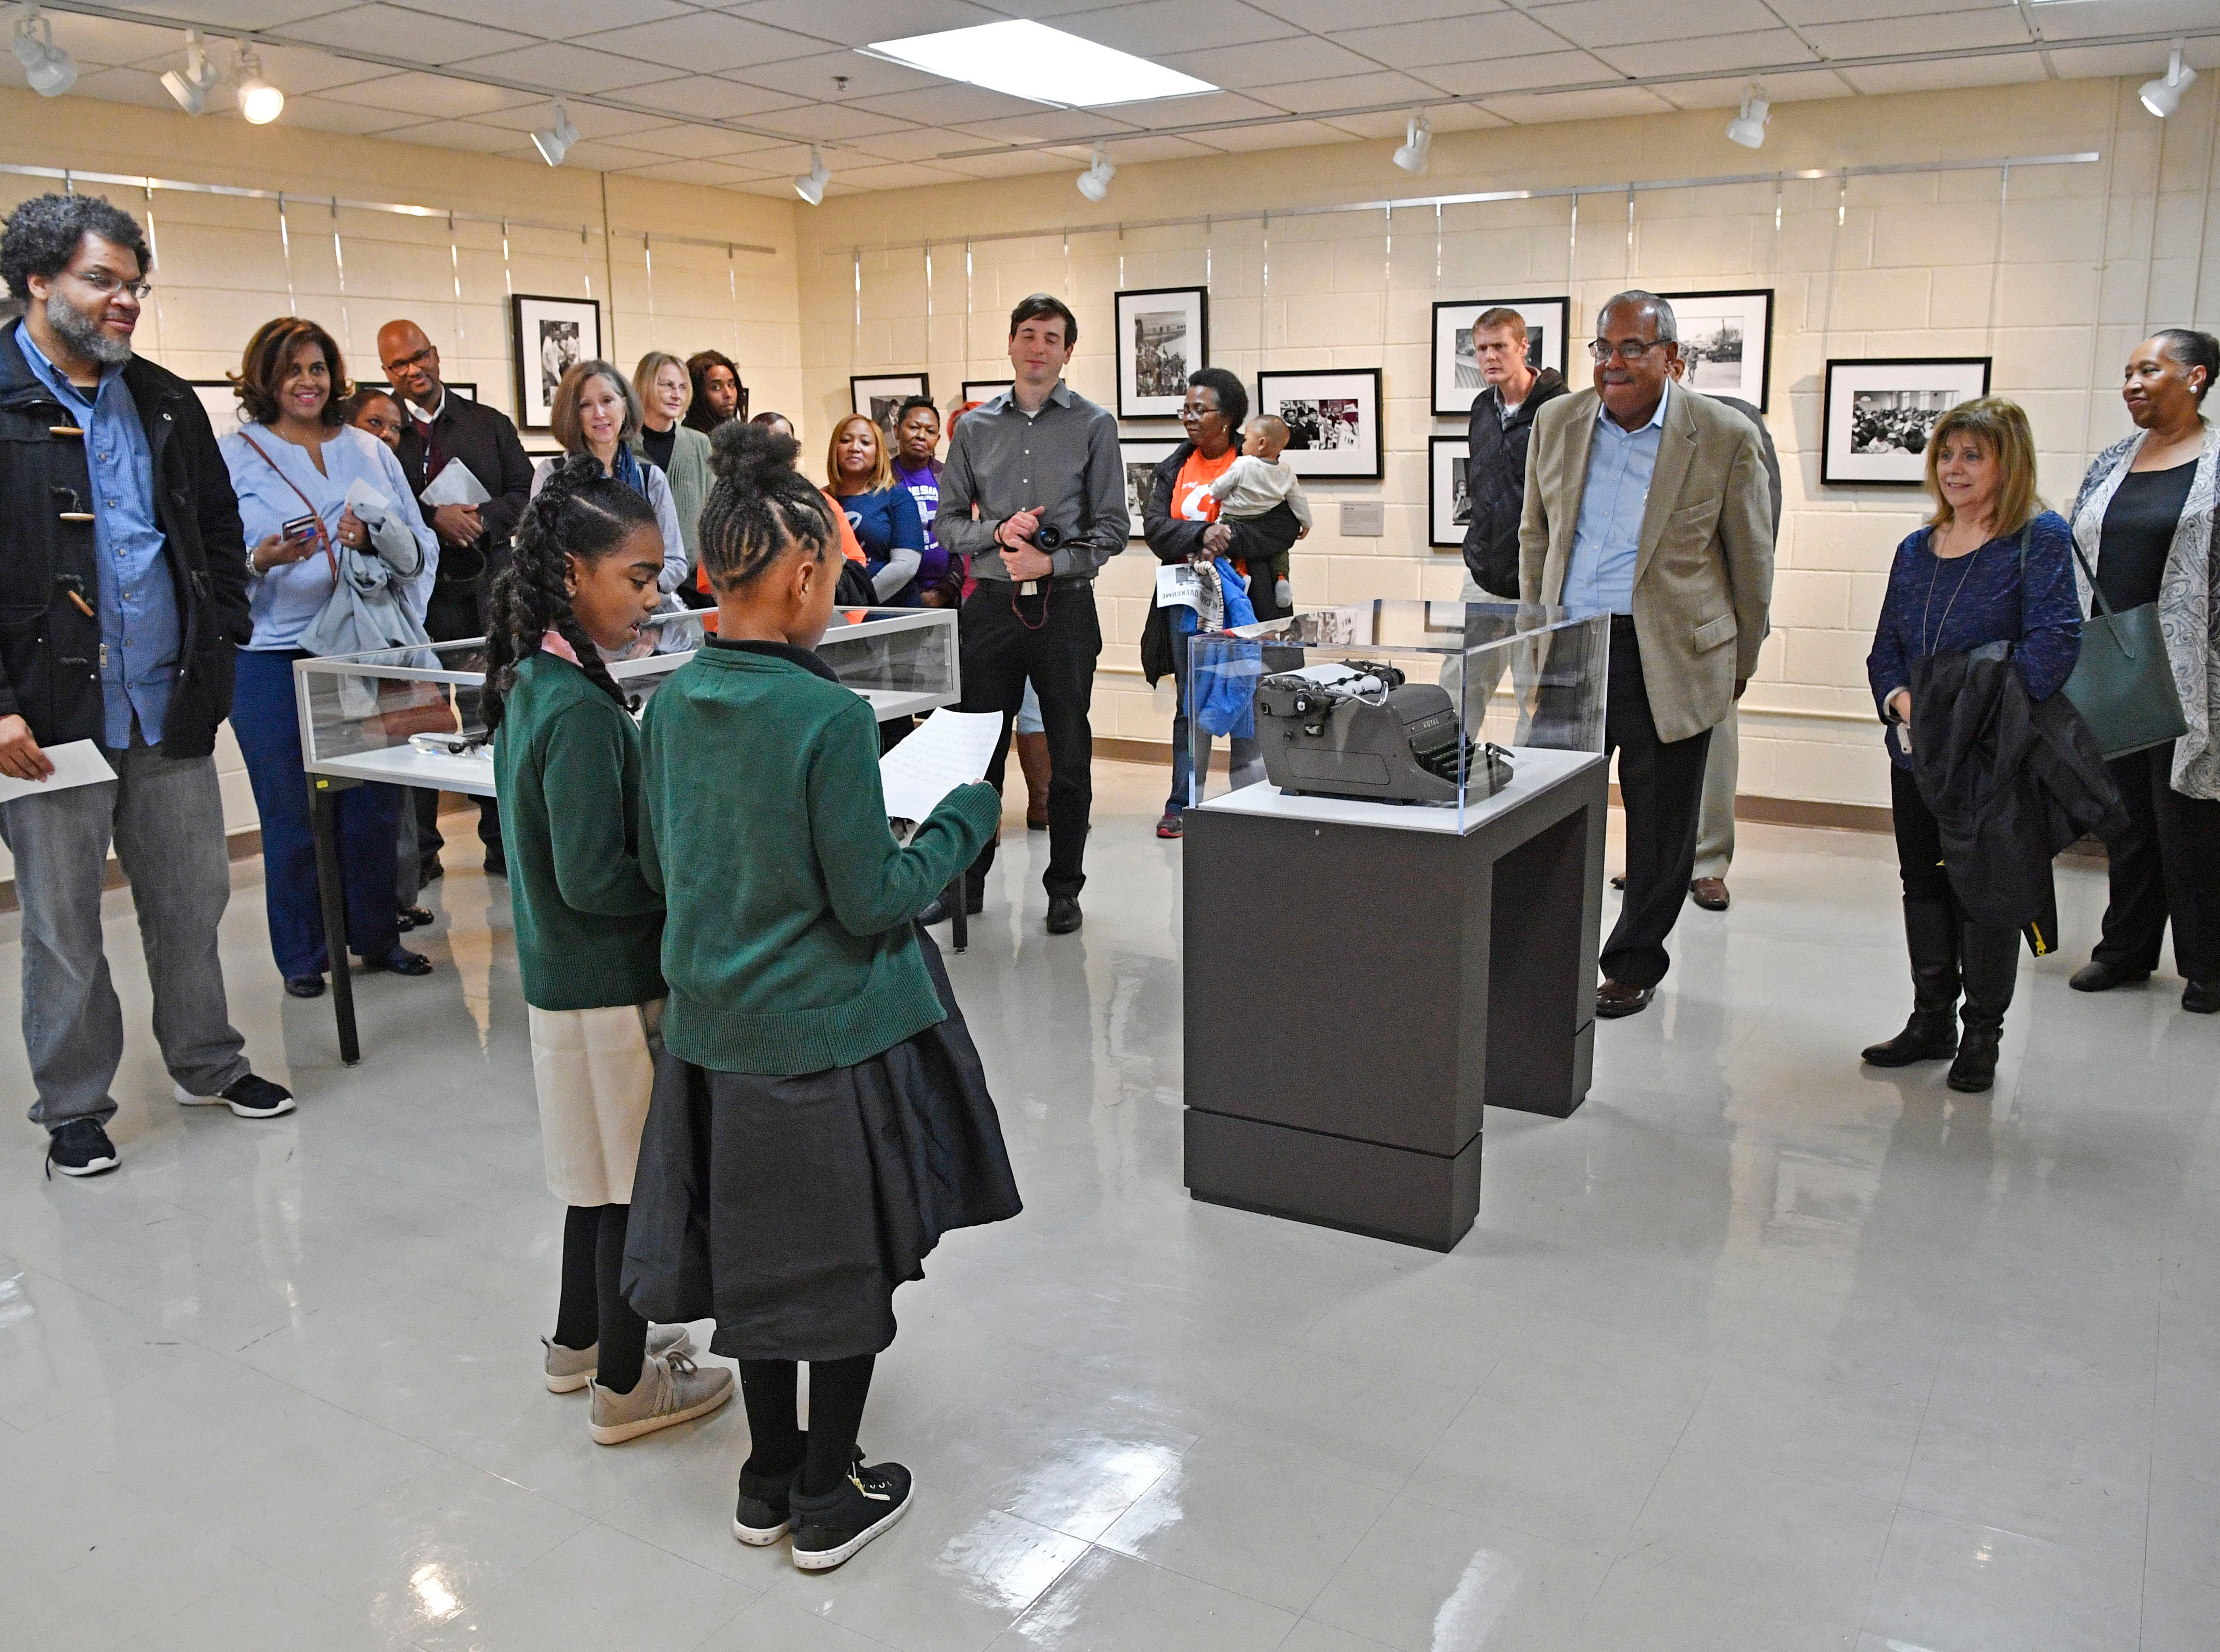 Students read an introduction to a significant part of We Shall Overcome exhibition that was presented at the Robert Churchwell Museum Magnet School. To celebrate its opening, the school hosted an assembly that featured remarks by the principal and a conversation with several participants, including Lajuanda Street Harley, Kwame Lillard, Rip Patton, and Gloria McKissack.